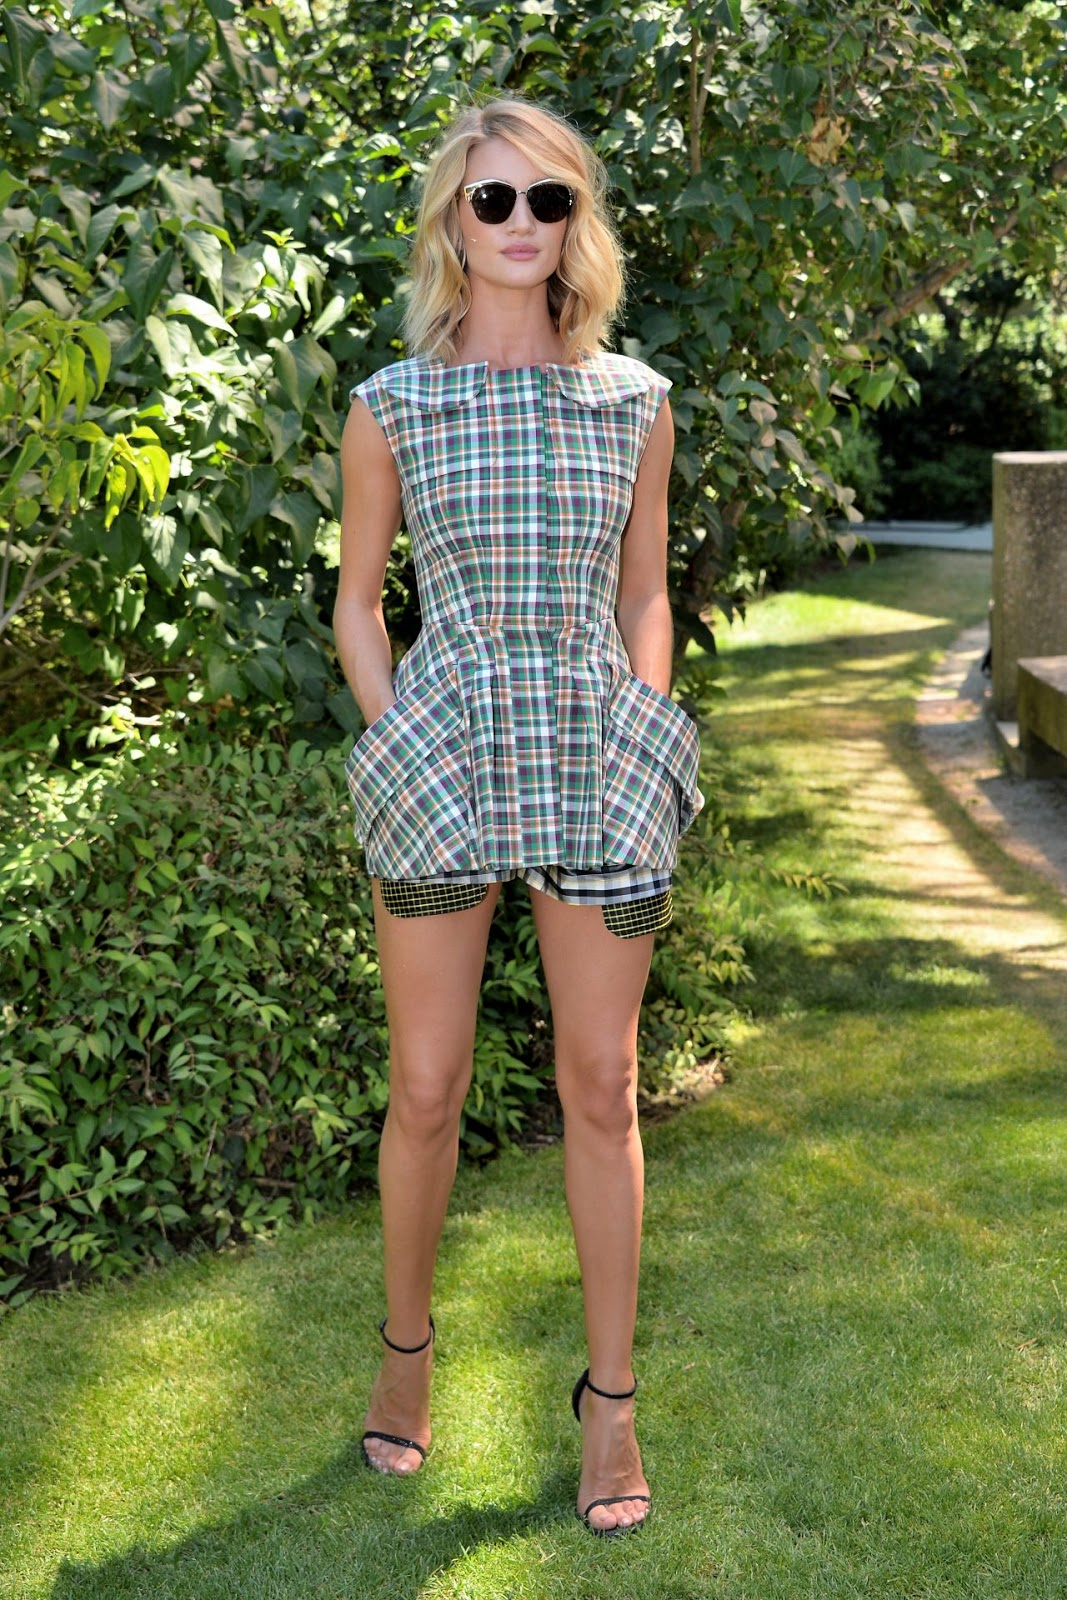 Rosie Huntington-Whiteley shows long legs at the Dior Cruise 2016 Paris Fashion Week Show